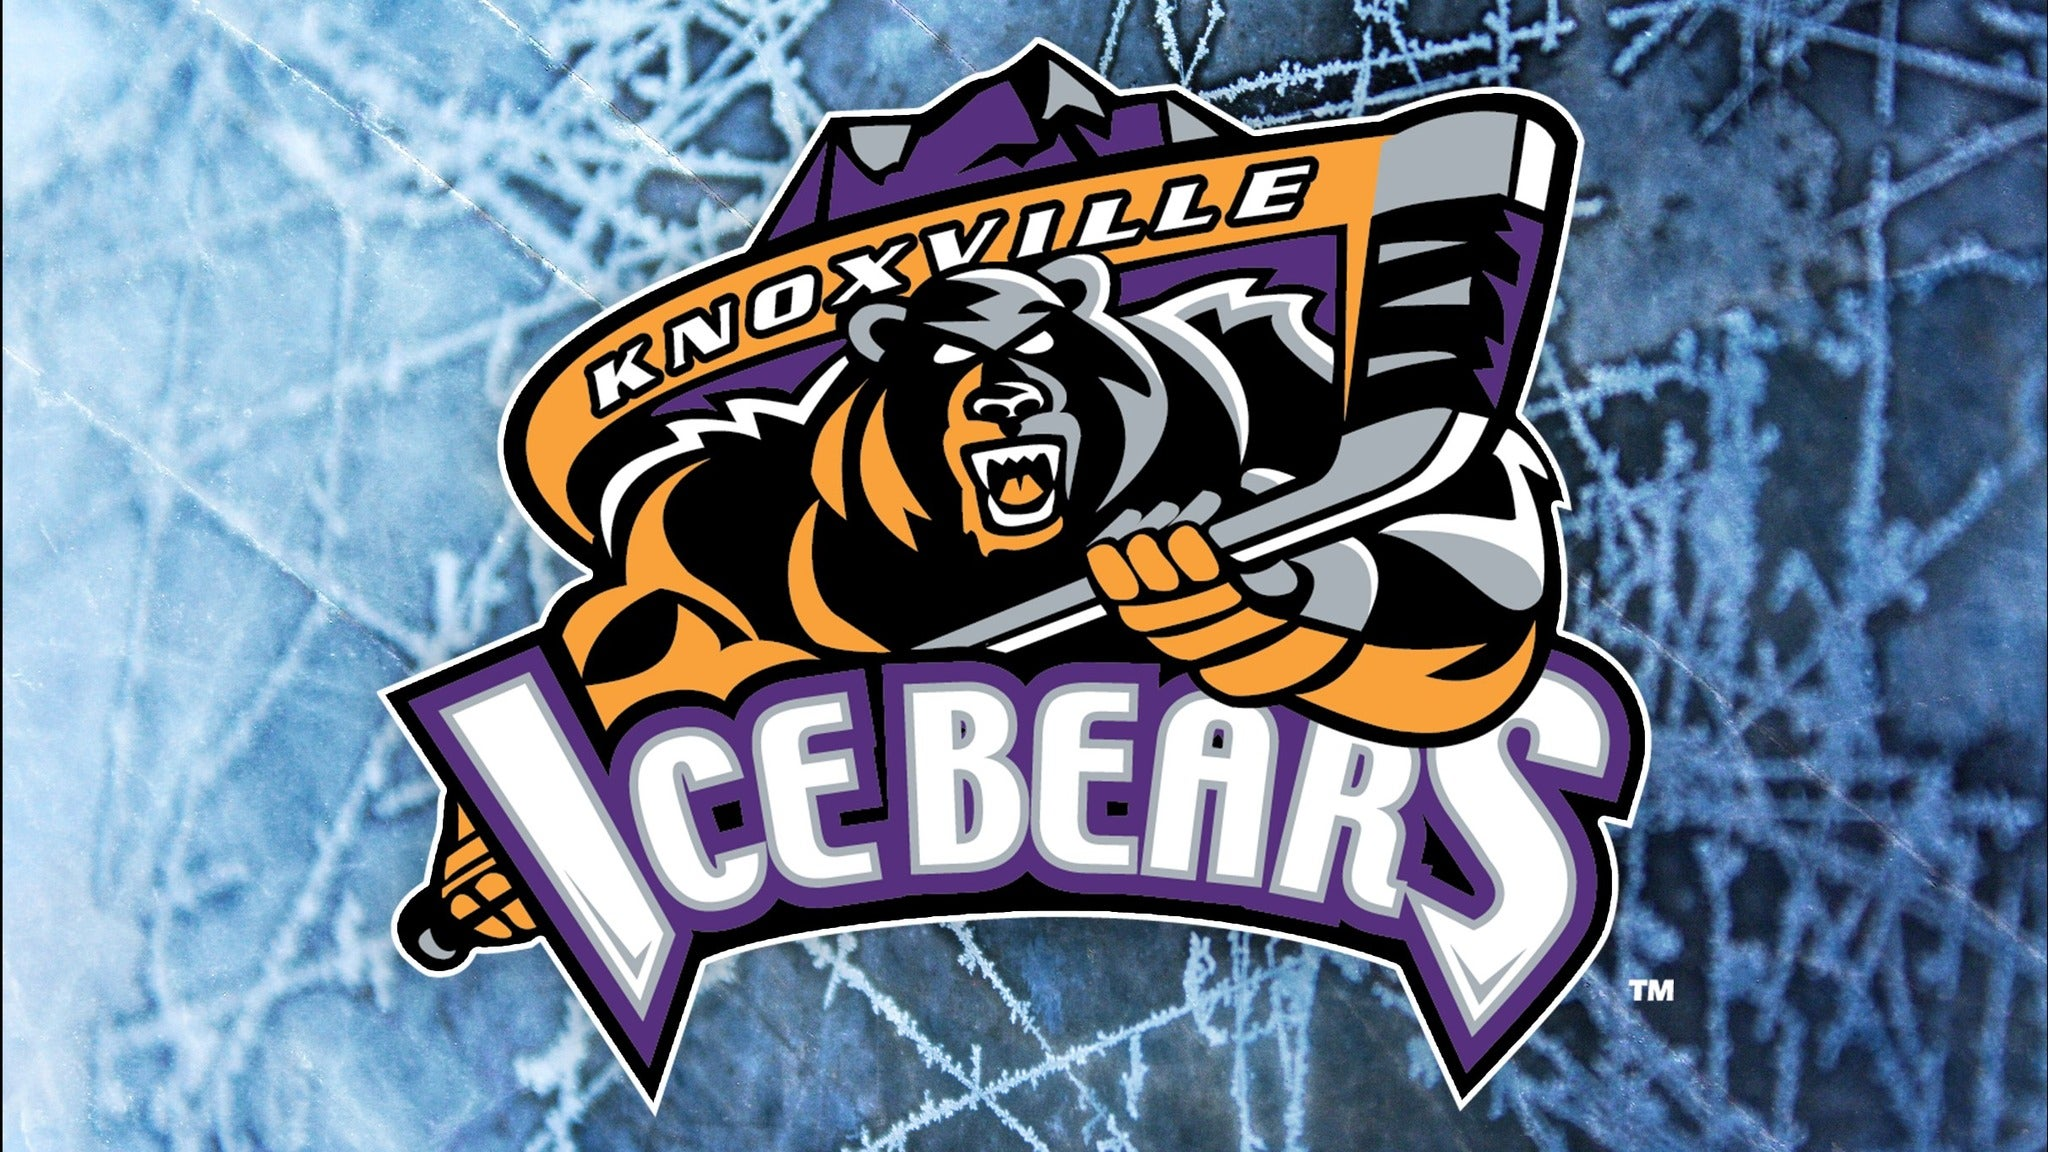 Knoxville Ice Bears vs. Evansville Thunderbolts